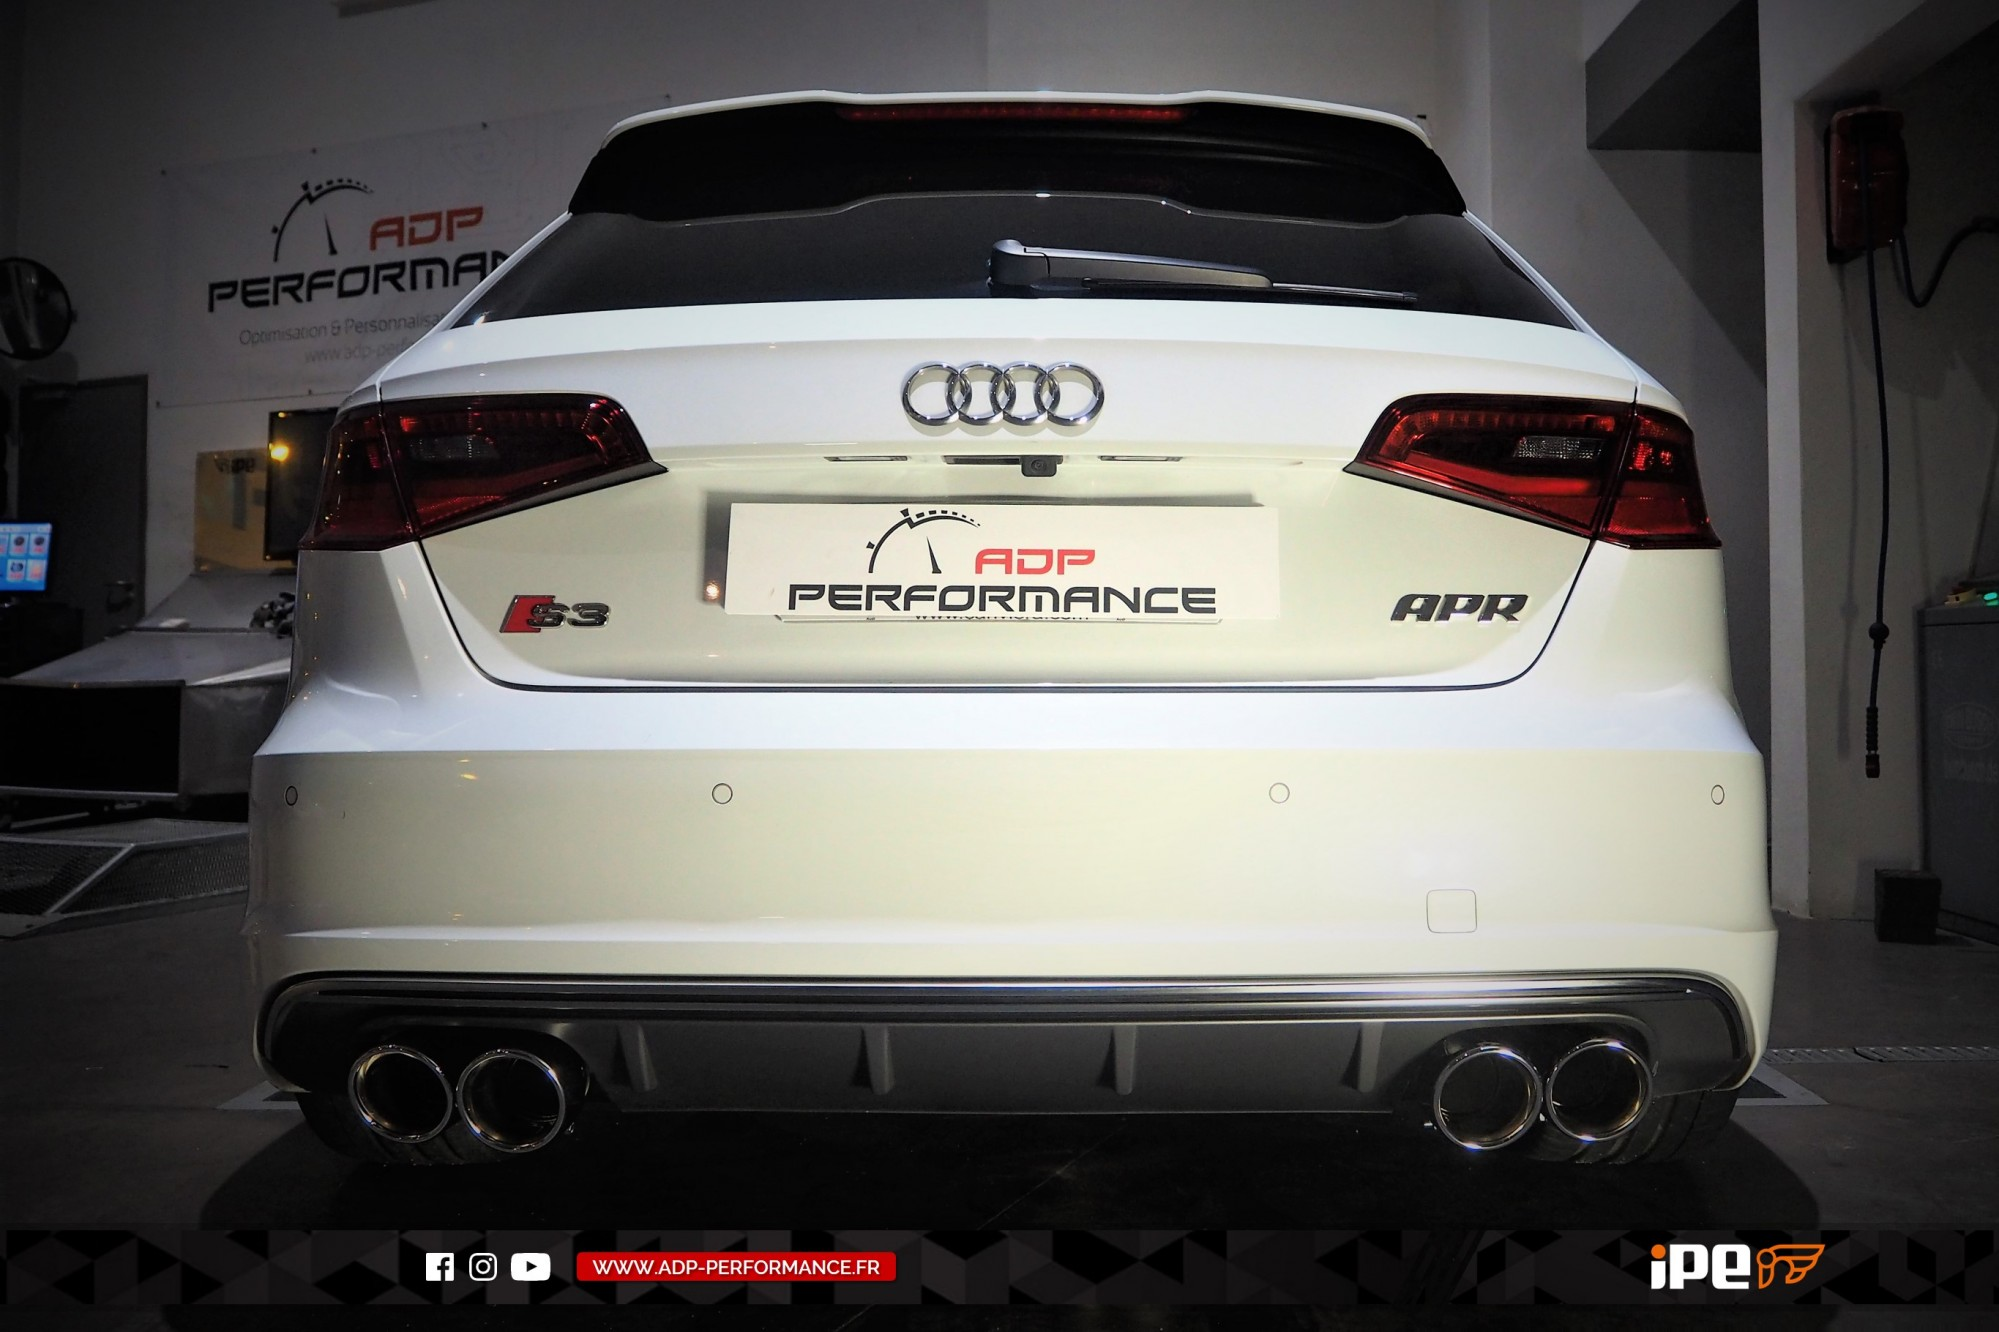 Ligne d'échappement (cat-back) iPE Innotech Salon de Provence - Audi S3 8V - ADP Performance